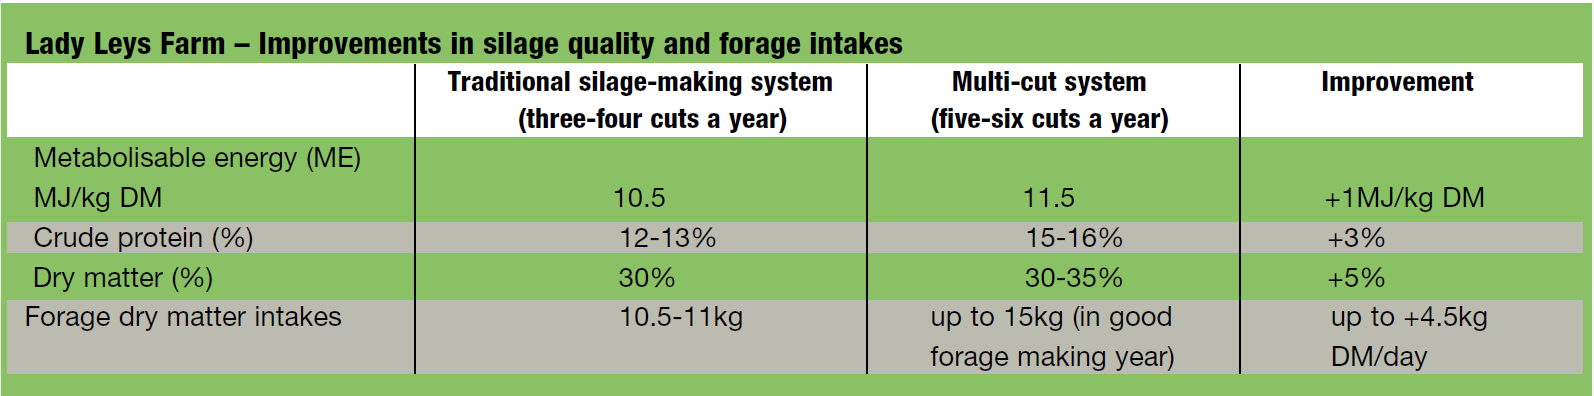 Lady Leys Farm – Improvements in silage quality and forage intakes